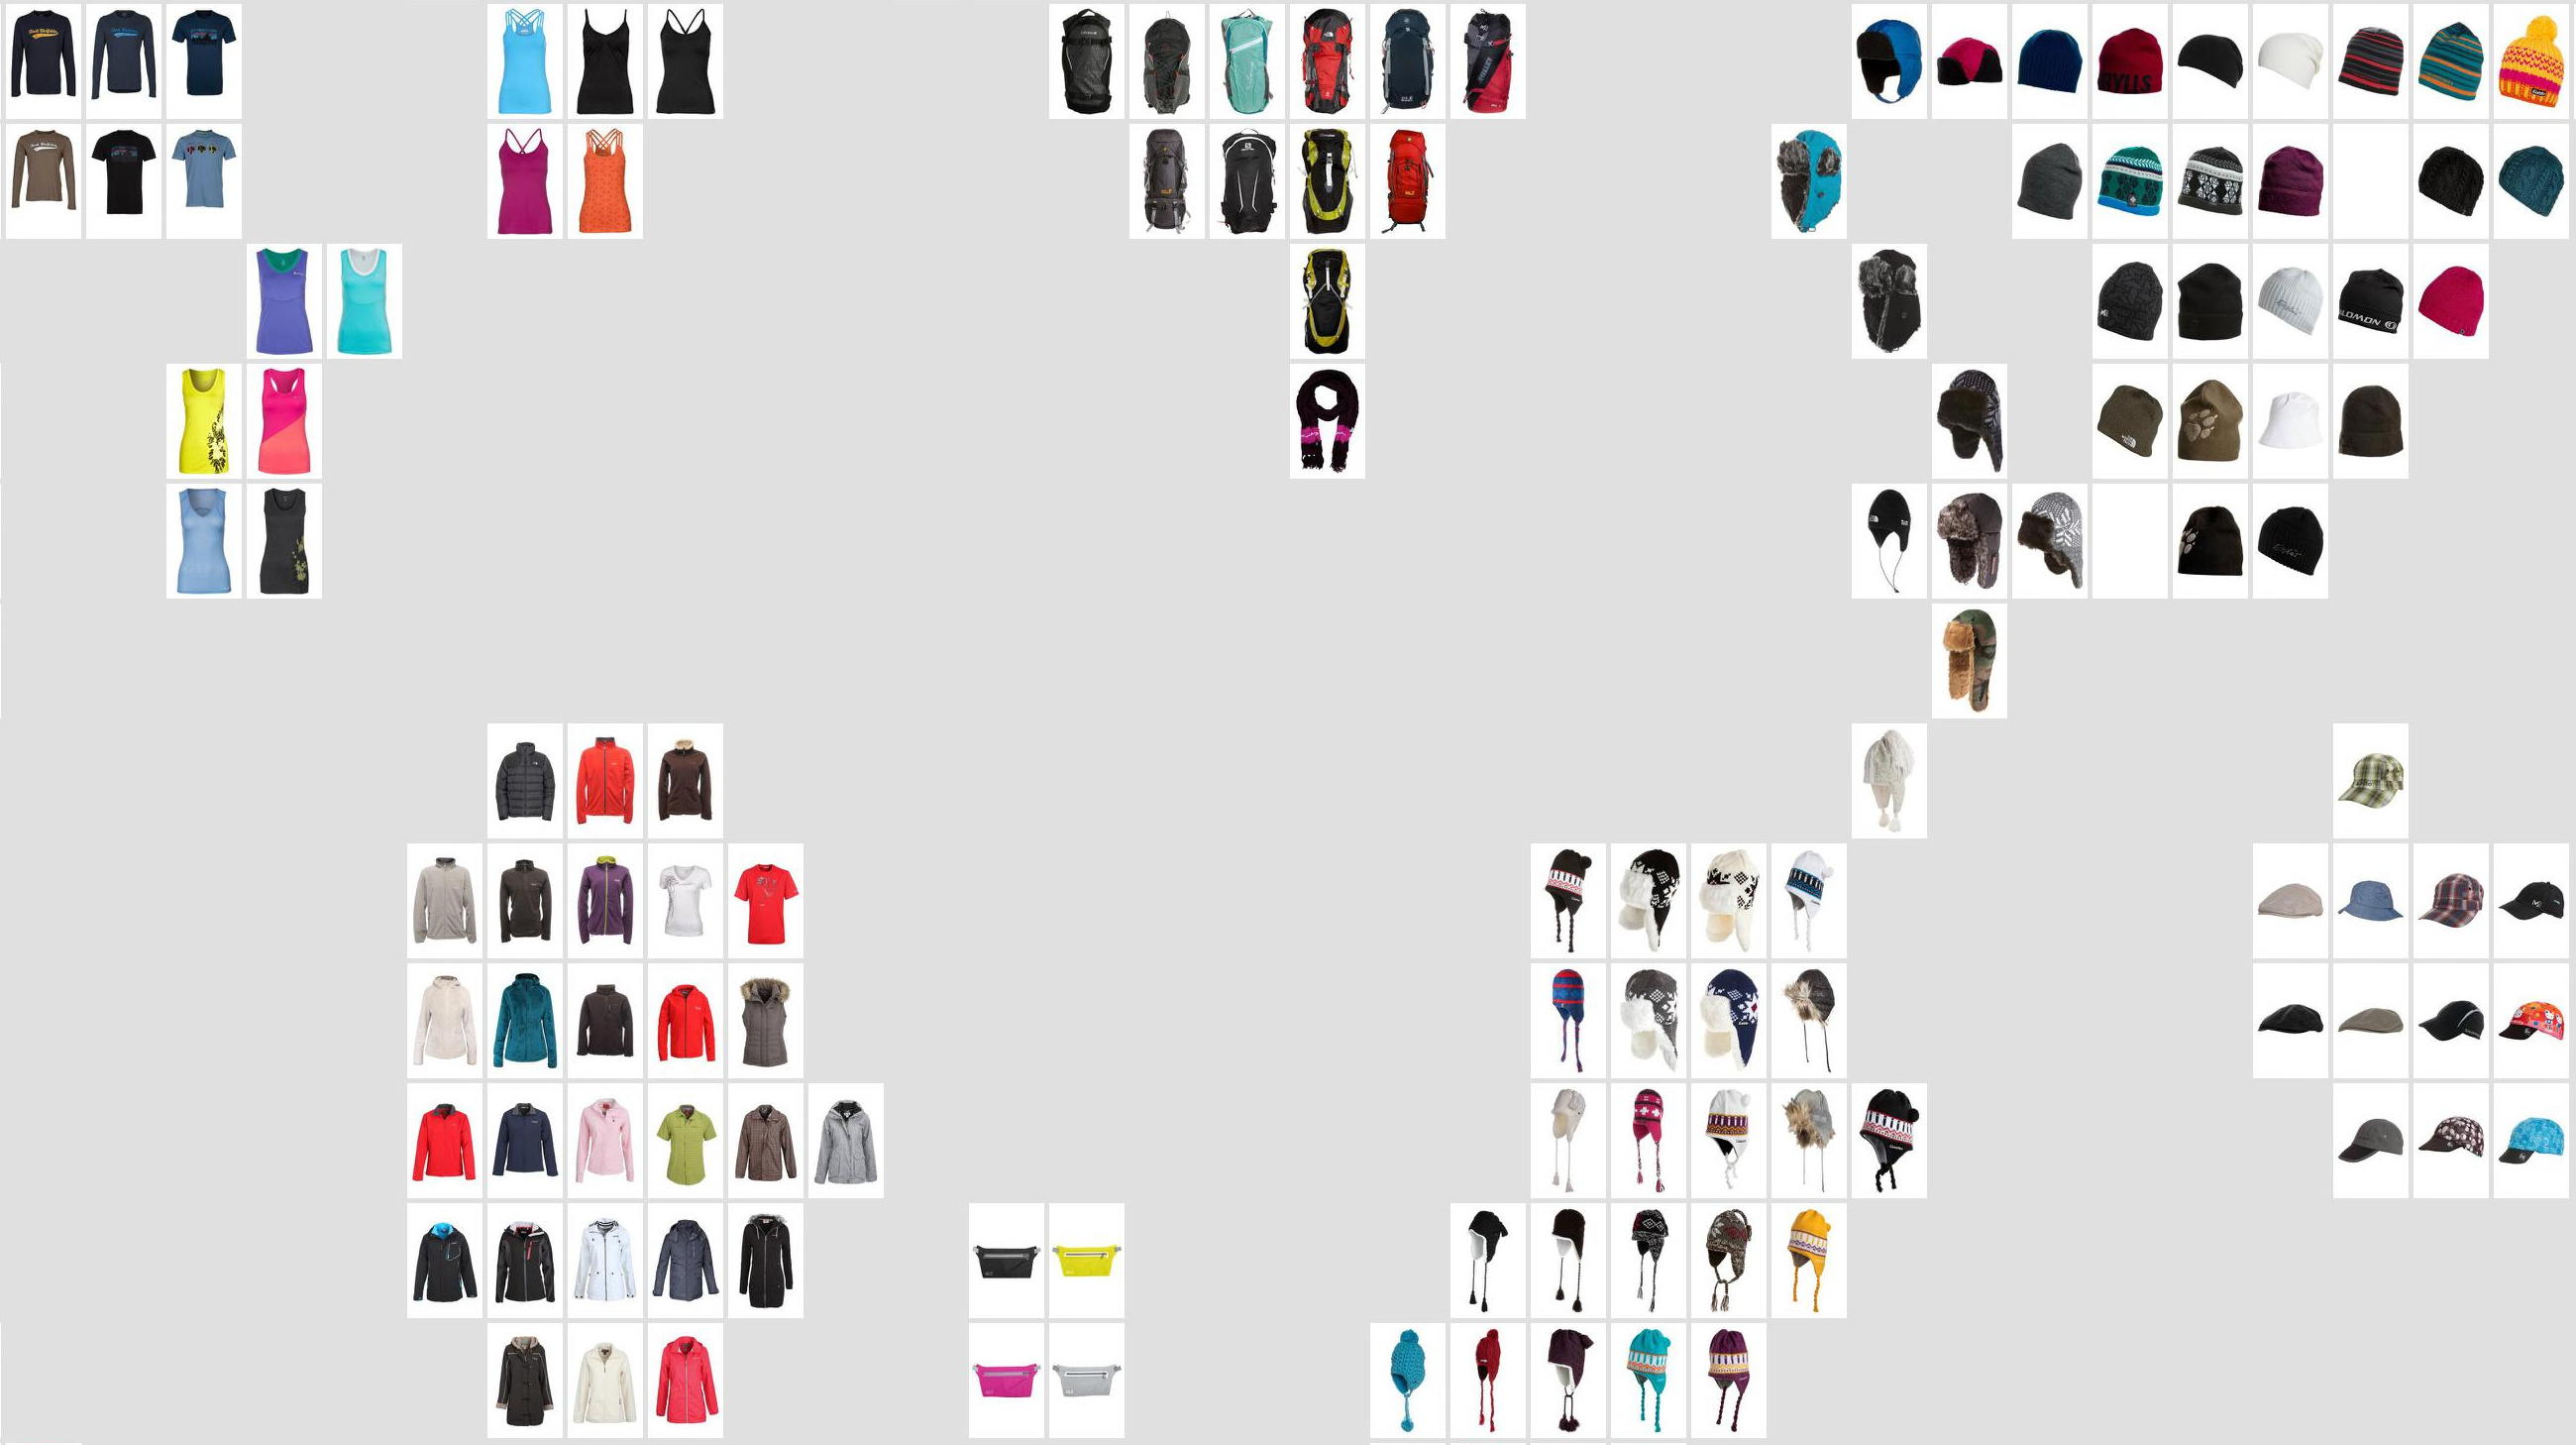 Fashion DNA: Structural Feature Mapping in the World of Retail